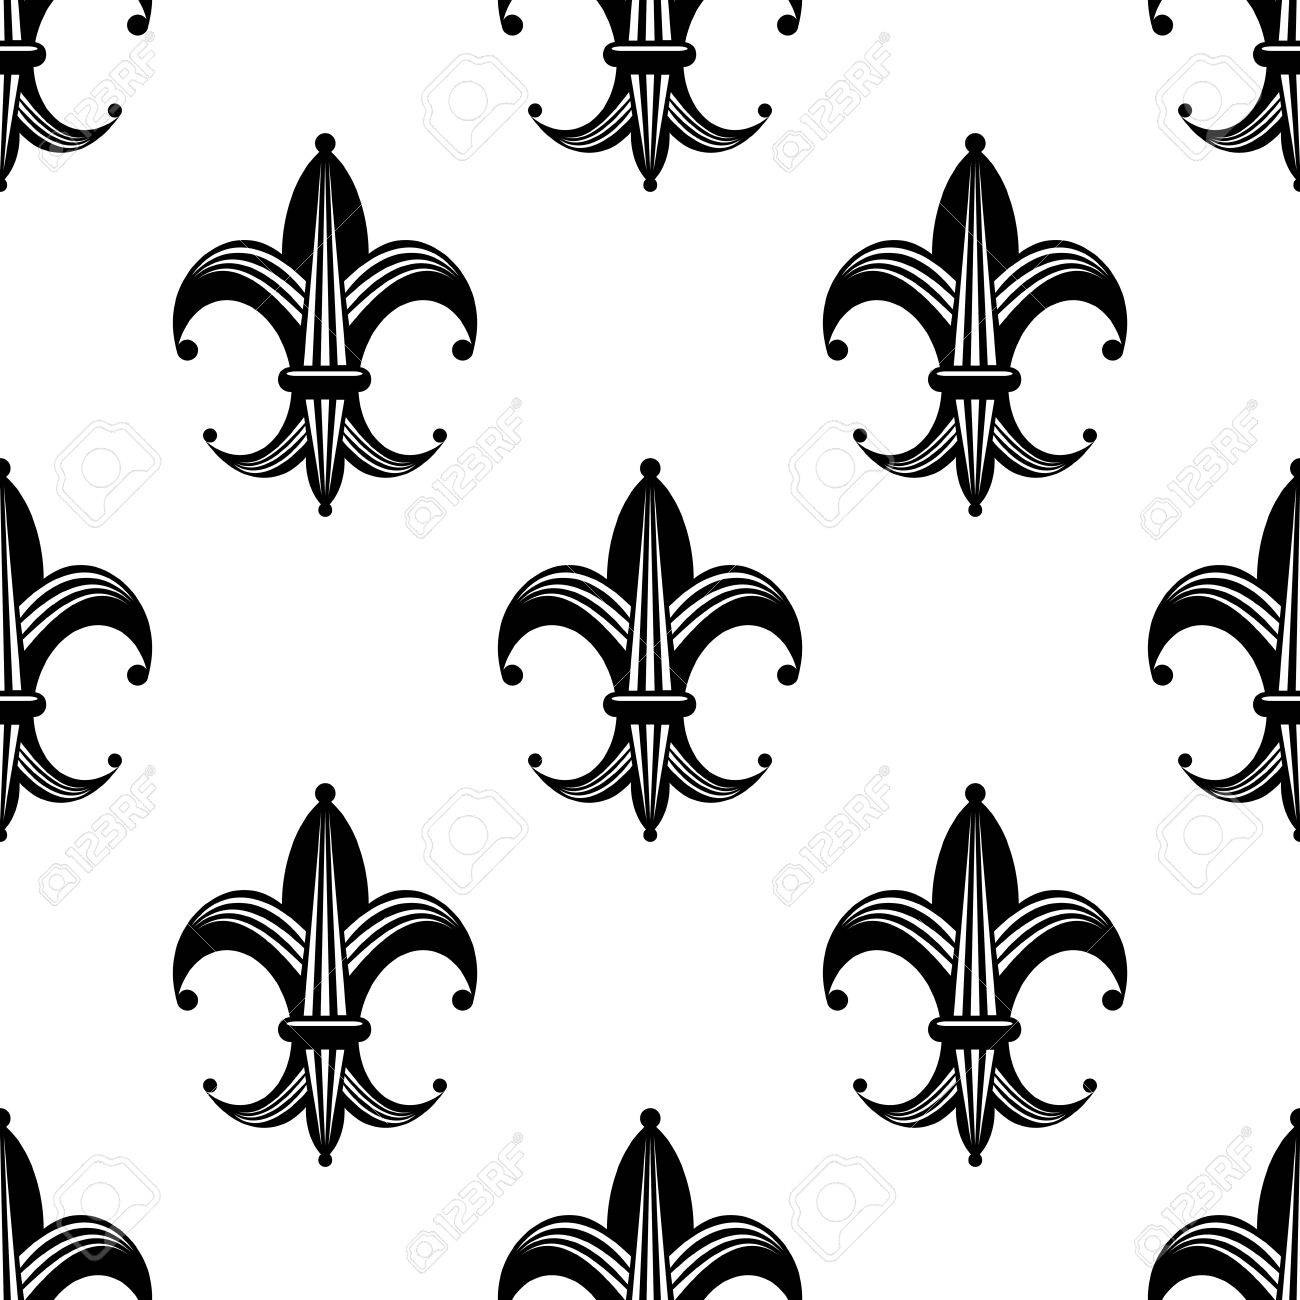 1300x1300 Seamless Black And White Stylized Fleur De Lys Pattern With An